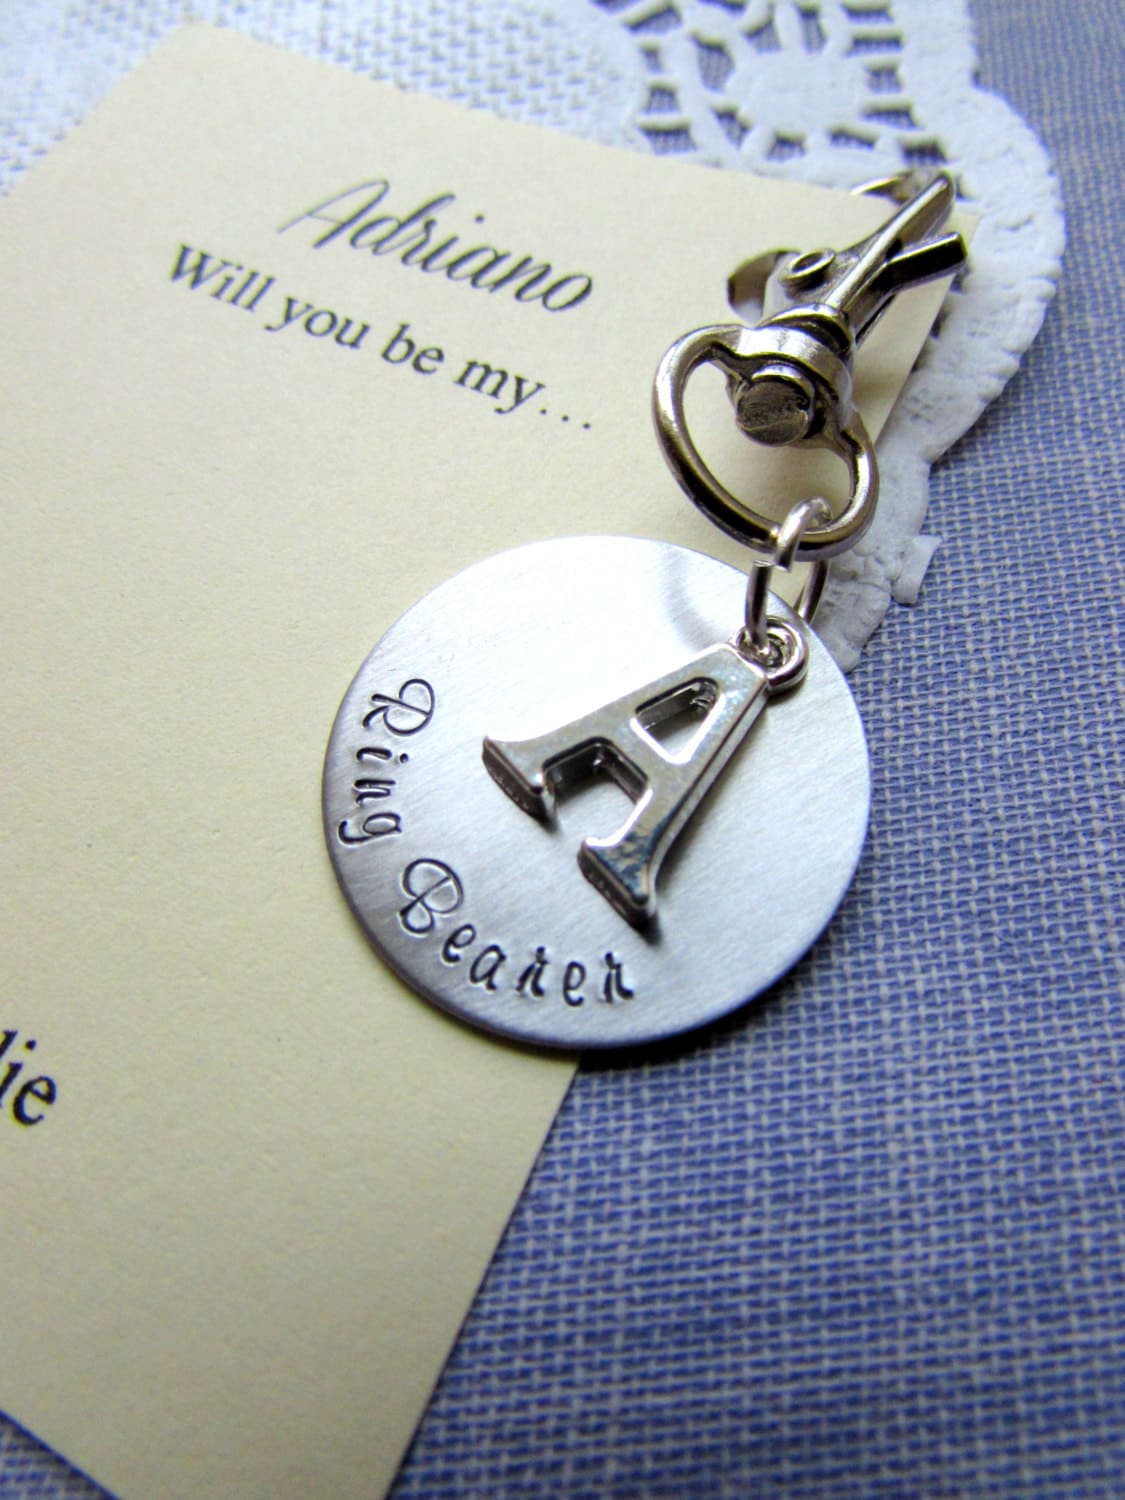 Wedding Gifts For Ring Bearer : Ring bearer ask gift wedding party. Keychain key charm